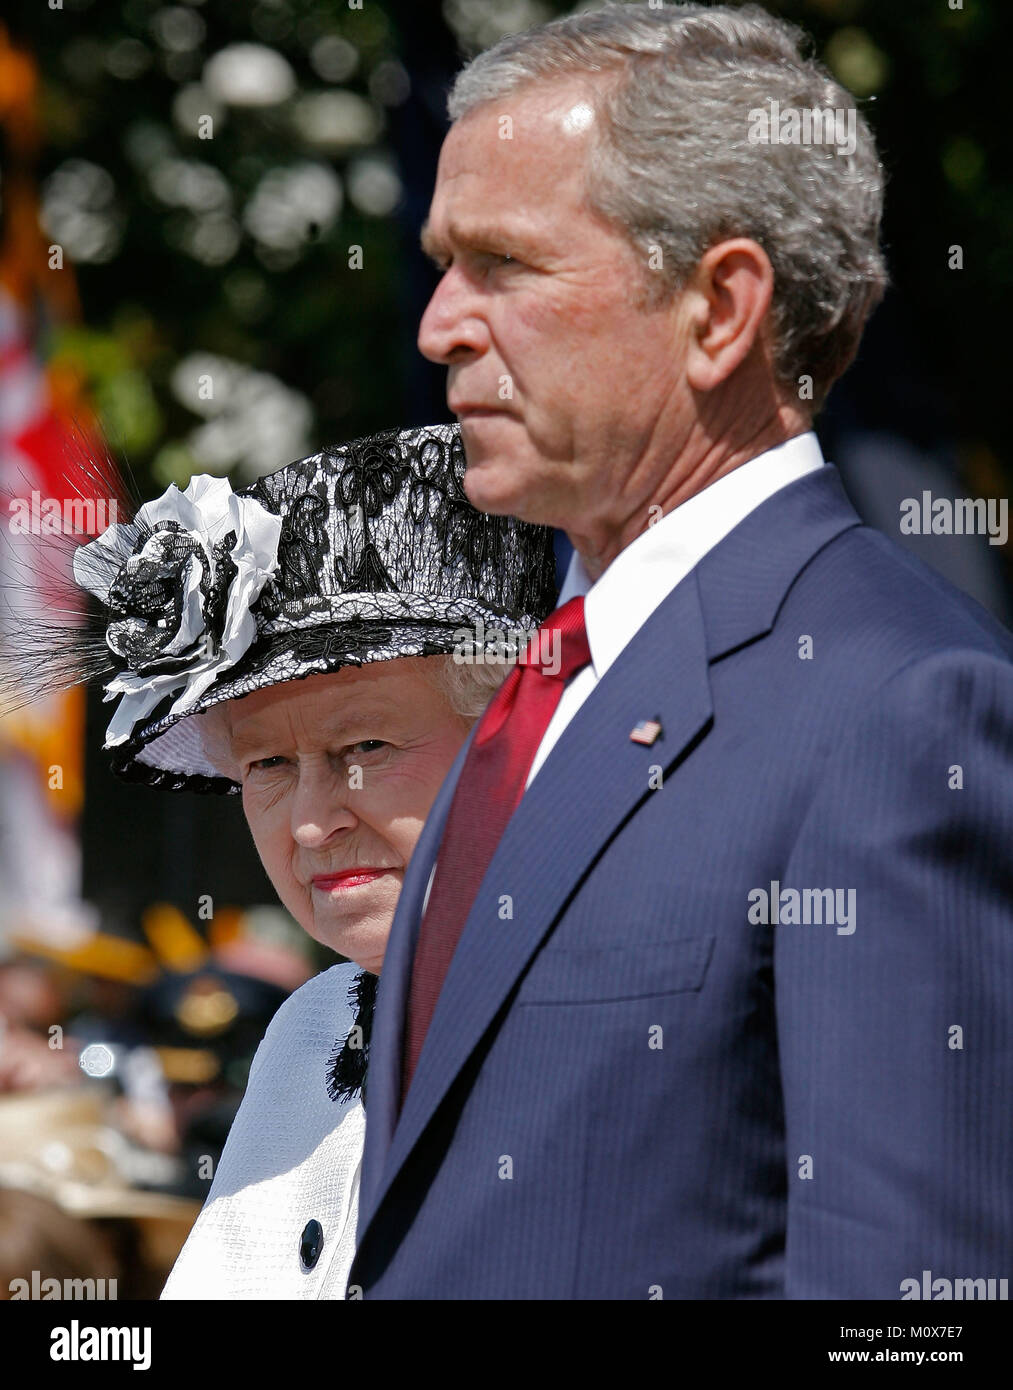 WASHINGTON - MAY 07:  (AFP OUT) U.S. President George W. Bush (R) and HRH Queen Elizabeth II review the troops on - Stock Image